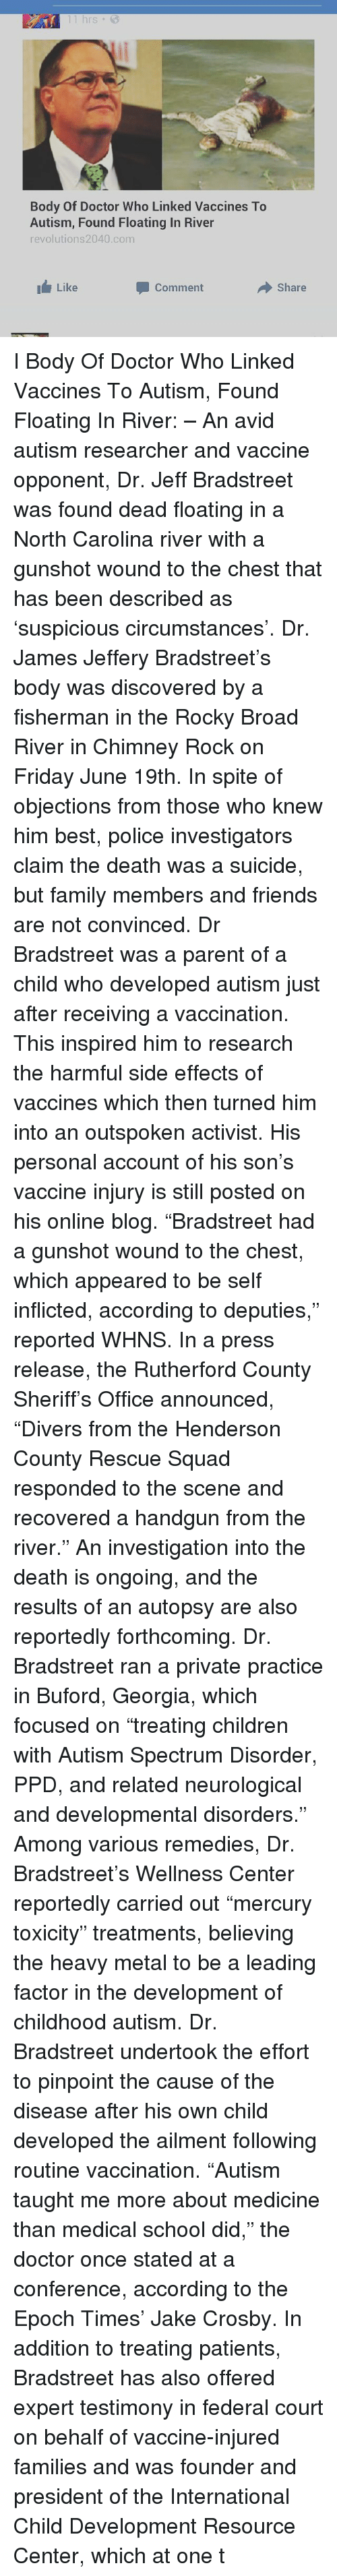 """epoch: 11 hrs  Body Of Doctor Who Linked Vaccines To  Autism, Found Floating In River  revolutions2040 com  Like  Comment  Share I Body Of Doctor Who Linked Vaccines To Autism, Found Floating In River: – An avid autism researcher and vaccine opponent, Dr. Jeff Bradstreet was found dead floating in a North Carolina river with a gunshot wound to the chest that has been described as 'suspicious circumstances'. Dr. James Jeffery Bradstreet's body was discovered by a fisherman in the Rocky Broad River in Chimney Rock on Friday June 19th. In spite of objections from those who knew him best, police investigators claim the death was a suicide, but family members and friends are not convinced. Dr Bradstreet was a parent of a child who developed autism just after receiving a vaccination. This inspired him to research the harmful side effects of vaccines which then turned him into an outspoken activist. His personal account of his son's vaccine injury is still posted on his online blog. """"Bradstreet had a gunshot wound to the chest, which appeared to be self inflicted, according to deputies,"""" reported WHNS. In a press release, the Rutherford County Sheriff's Office announced, """"Divers from the Henderson County Rescue Squad responded to the scene and recovered a handgun from the river."""" An investigation into the death is ongoing, and the results of an autopsy are also reportedly forthcoming. Dr. Bradstreet ran a private practice in Buford, Georgia, which focused on """"treating children with Autism Spectrum Disorder, PPD, and related neurological and developmental disorders."""" Among various remedies, Dr. Bradstreet's Wellness Center reportedly carried out """"mercury toxicity"""" treatments, believing the heavy metal to be a leading factor in the development of childhood autism. Dr. Bradstreet undertook the effort to pinpoint the cause of the disease after his own child developed the ailment following routine vaccination. """"Autism taught me more about medicine than medical school did,"""" the """